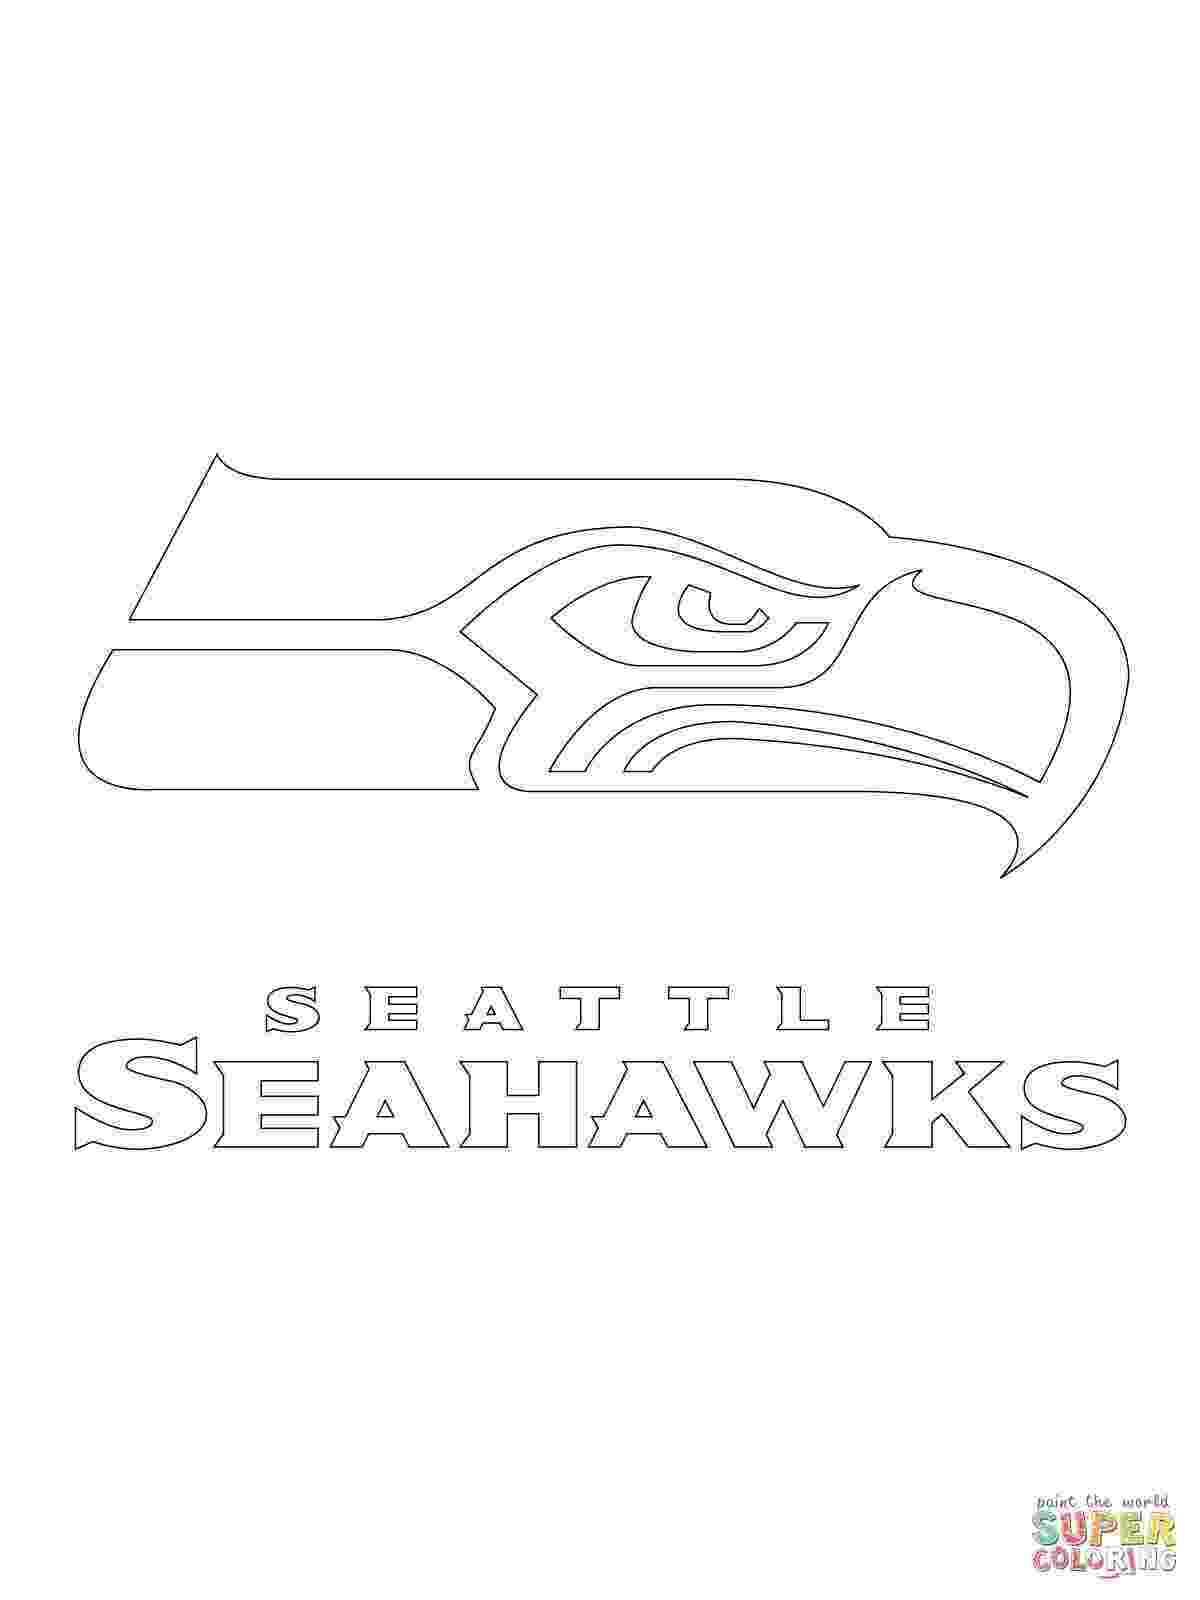 seahawks coloring pages seattle seahawks logo super coloring seattle seahawks coloring pages seahawks